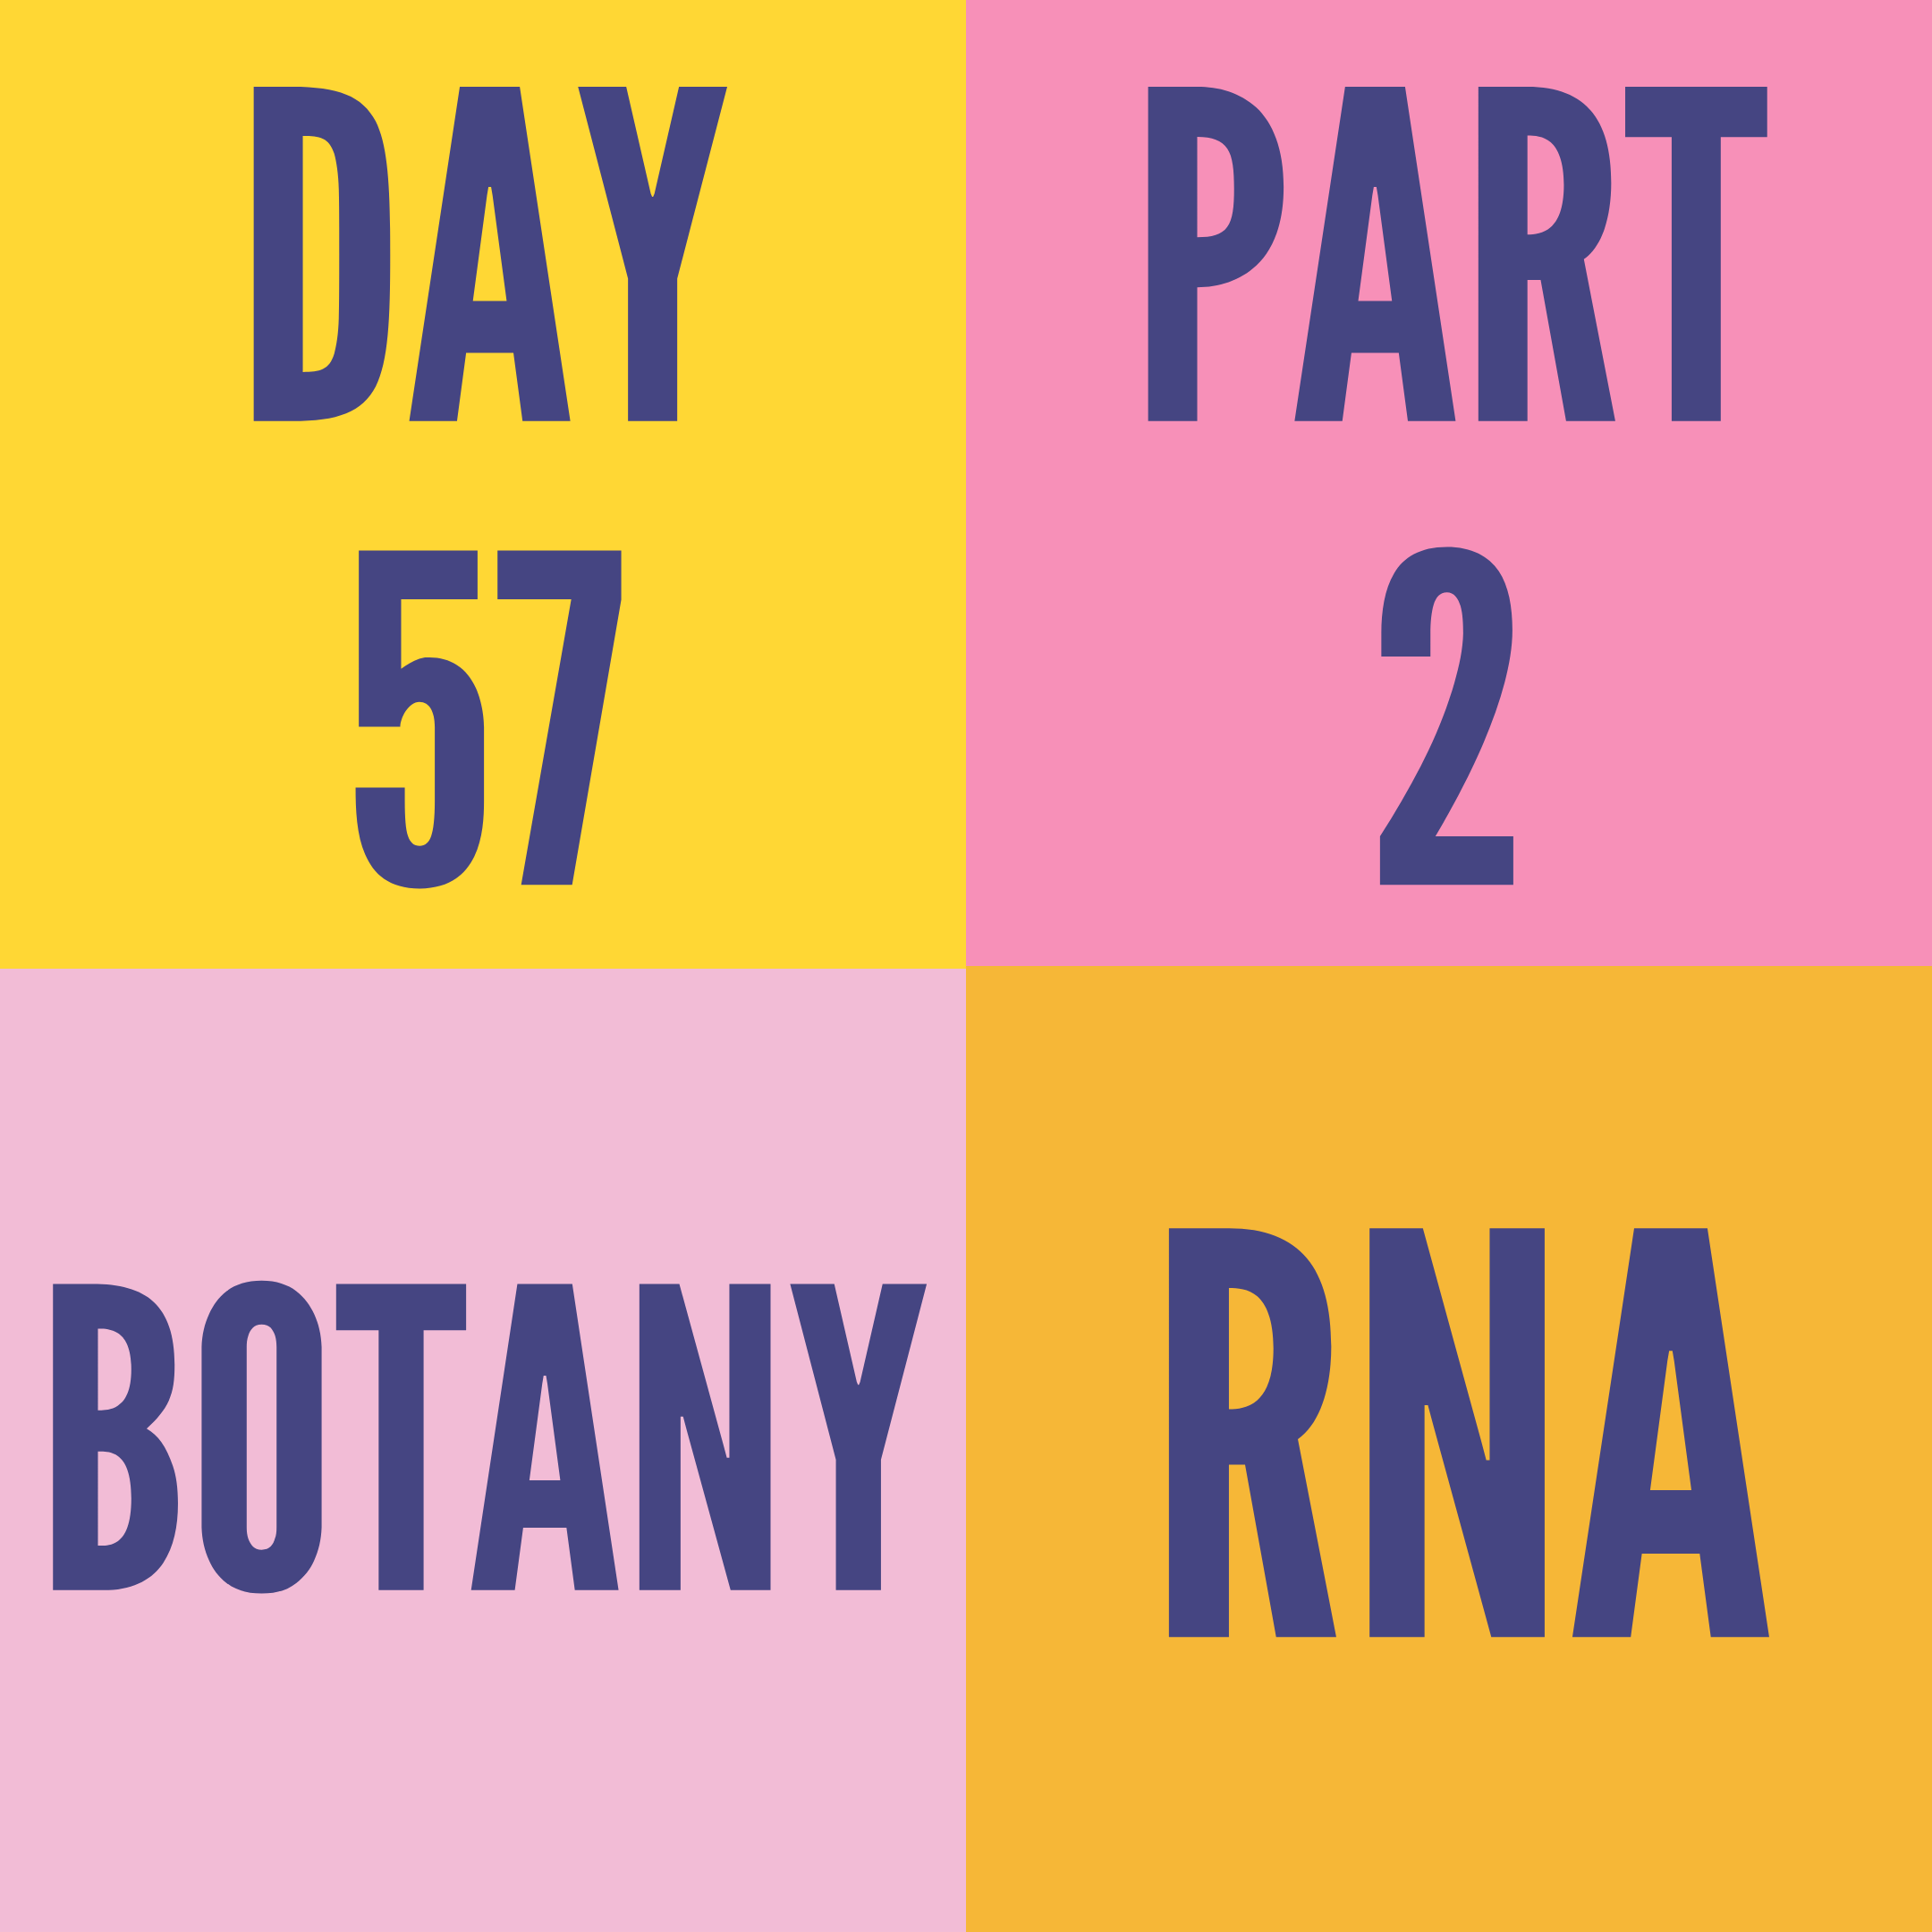 DAY-57 PART-2 RNA